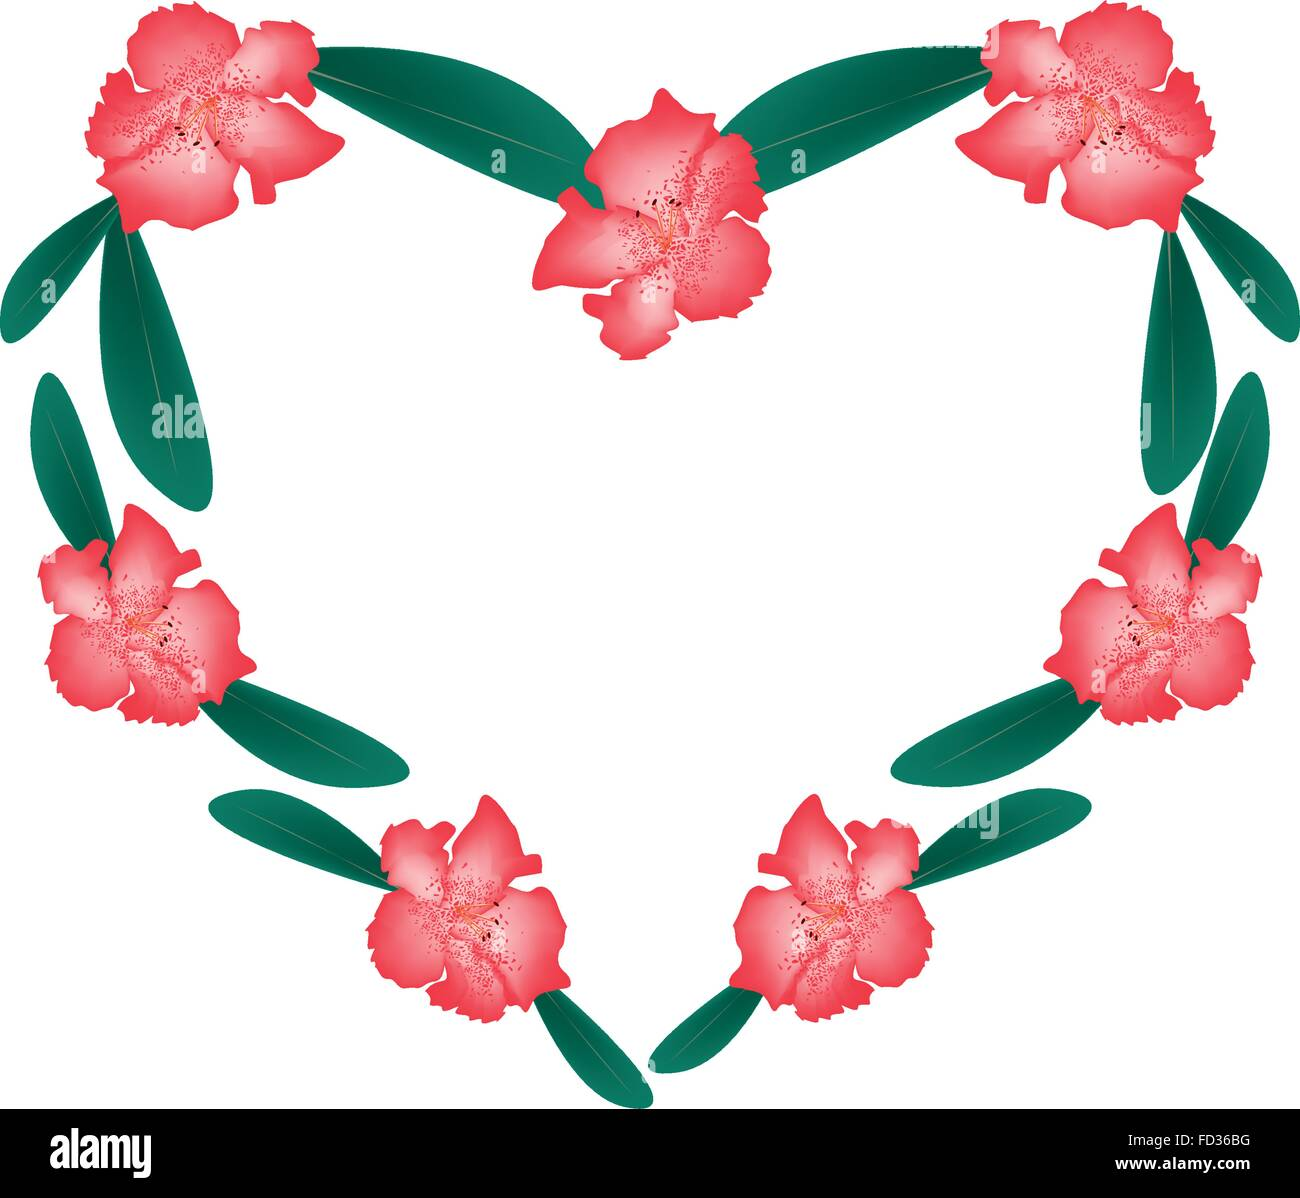 Love Concept, Illustration of Red Rhododendron Flowers Forming in Heart Shape Isolated on White Background. - Stock Vector